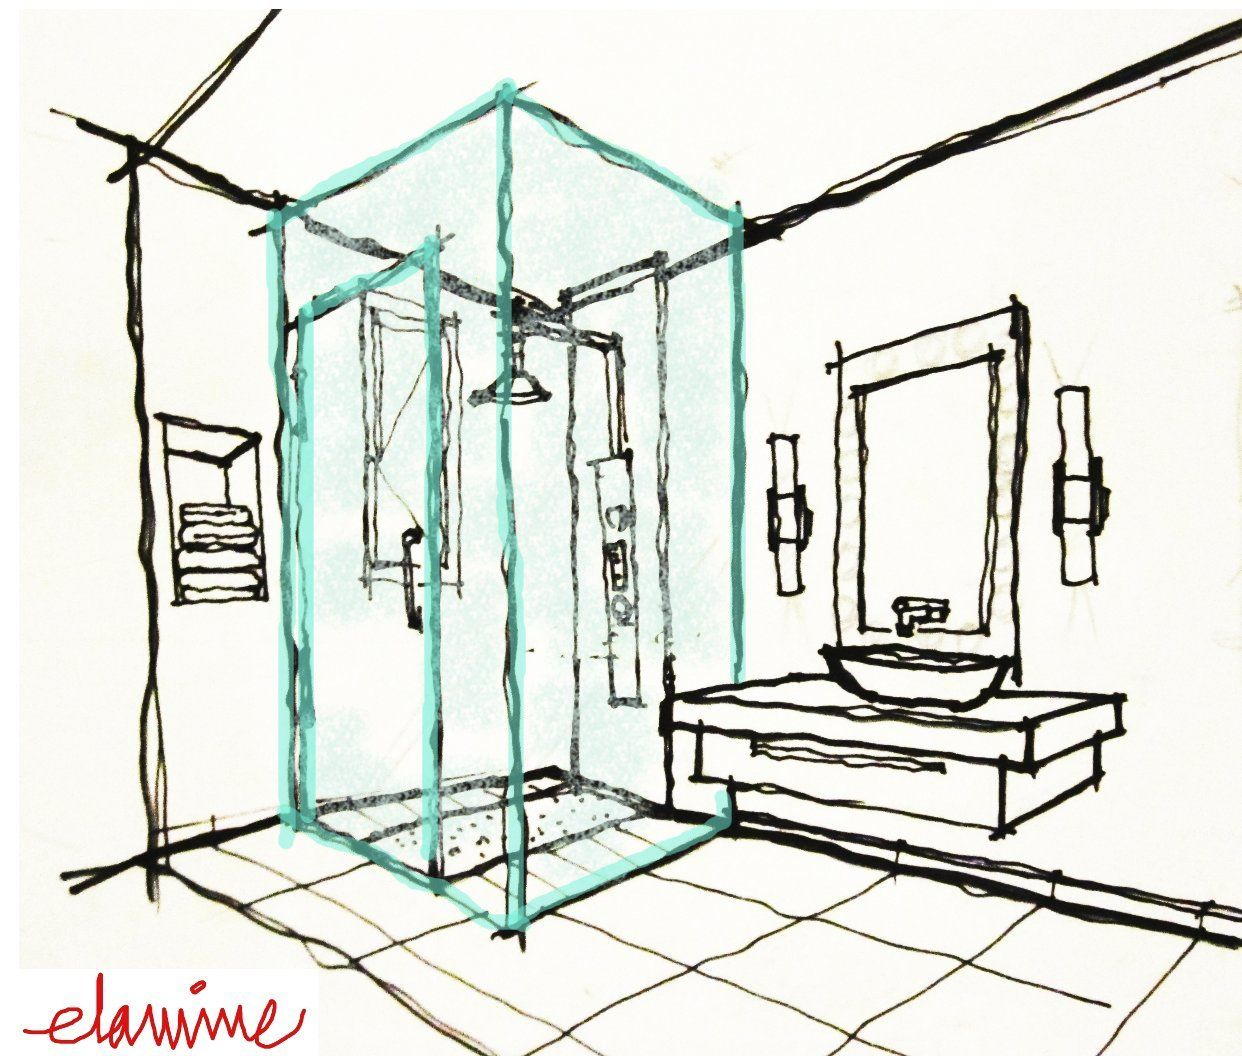 Bathroom drawings design - Bathroom Plans Sketches Google Search